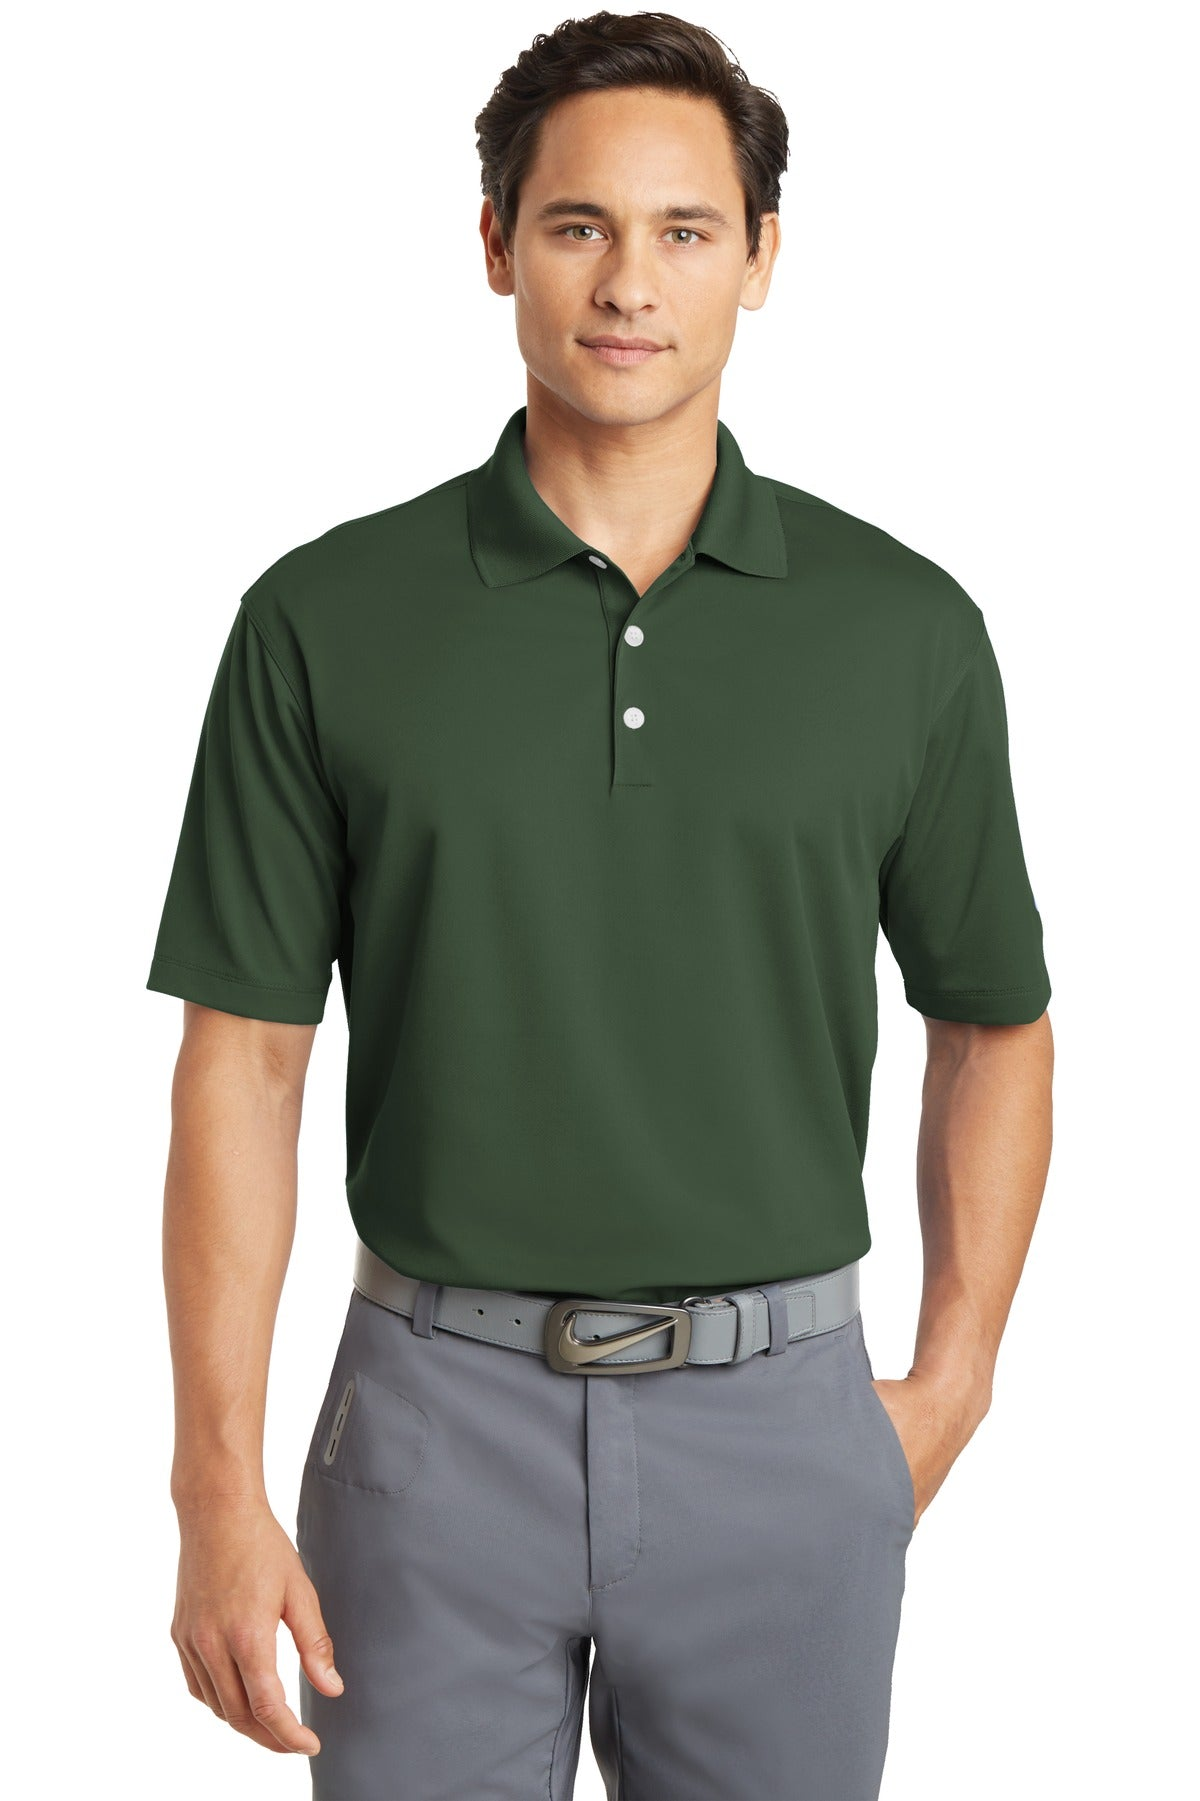 Fir Nike Tall Dri-FIT Micro Pique Polo.